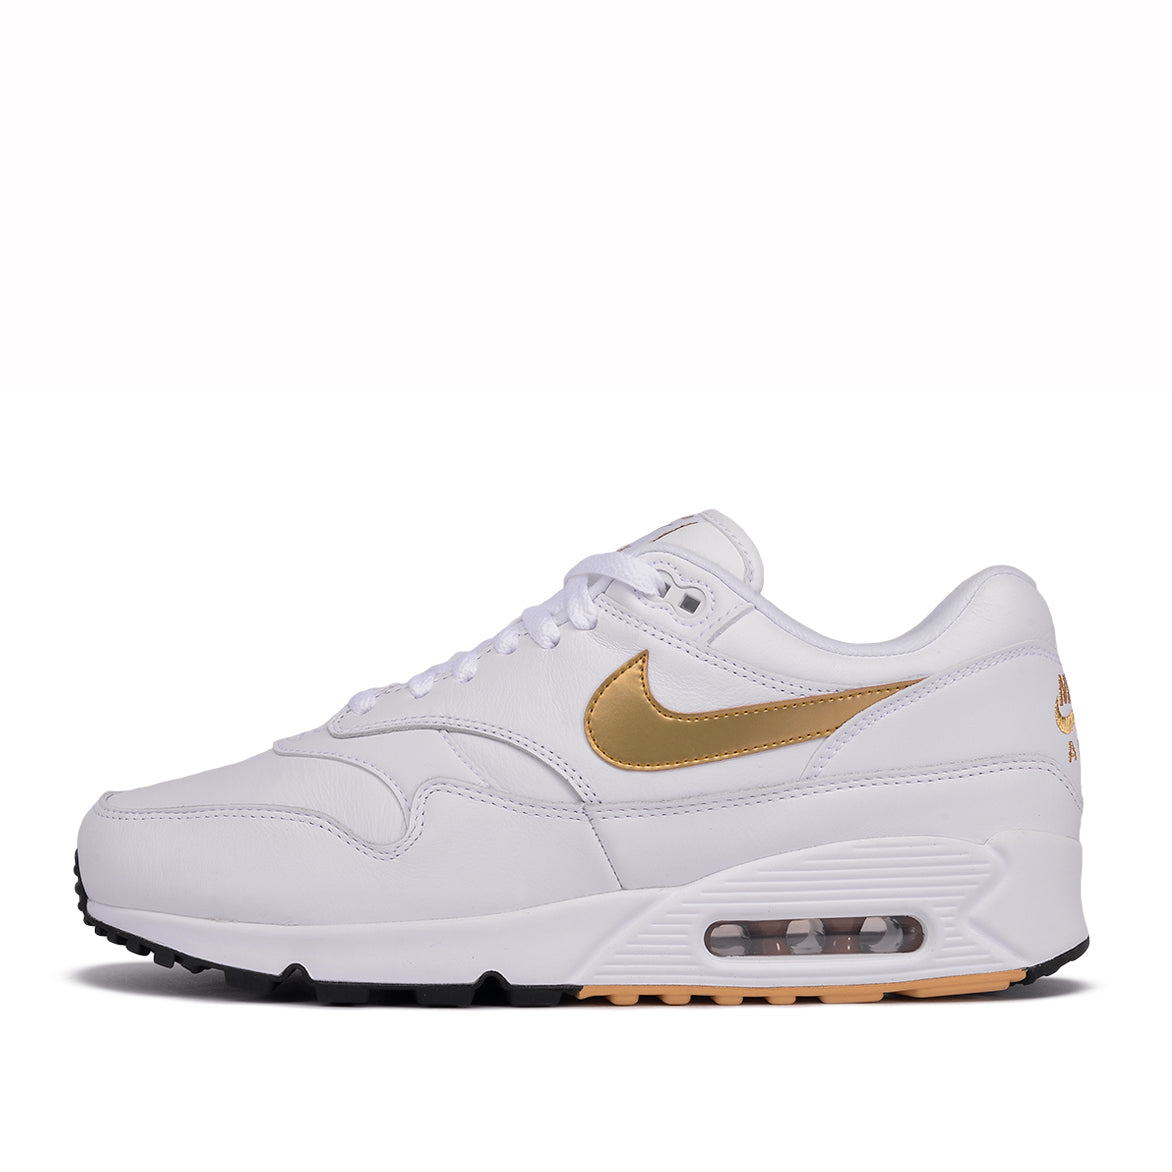 detailed pictures 0091c 3e28b AIR MAX 90 1